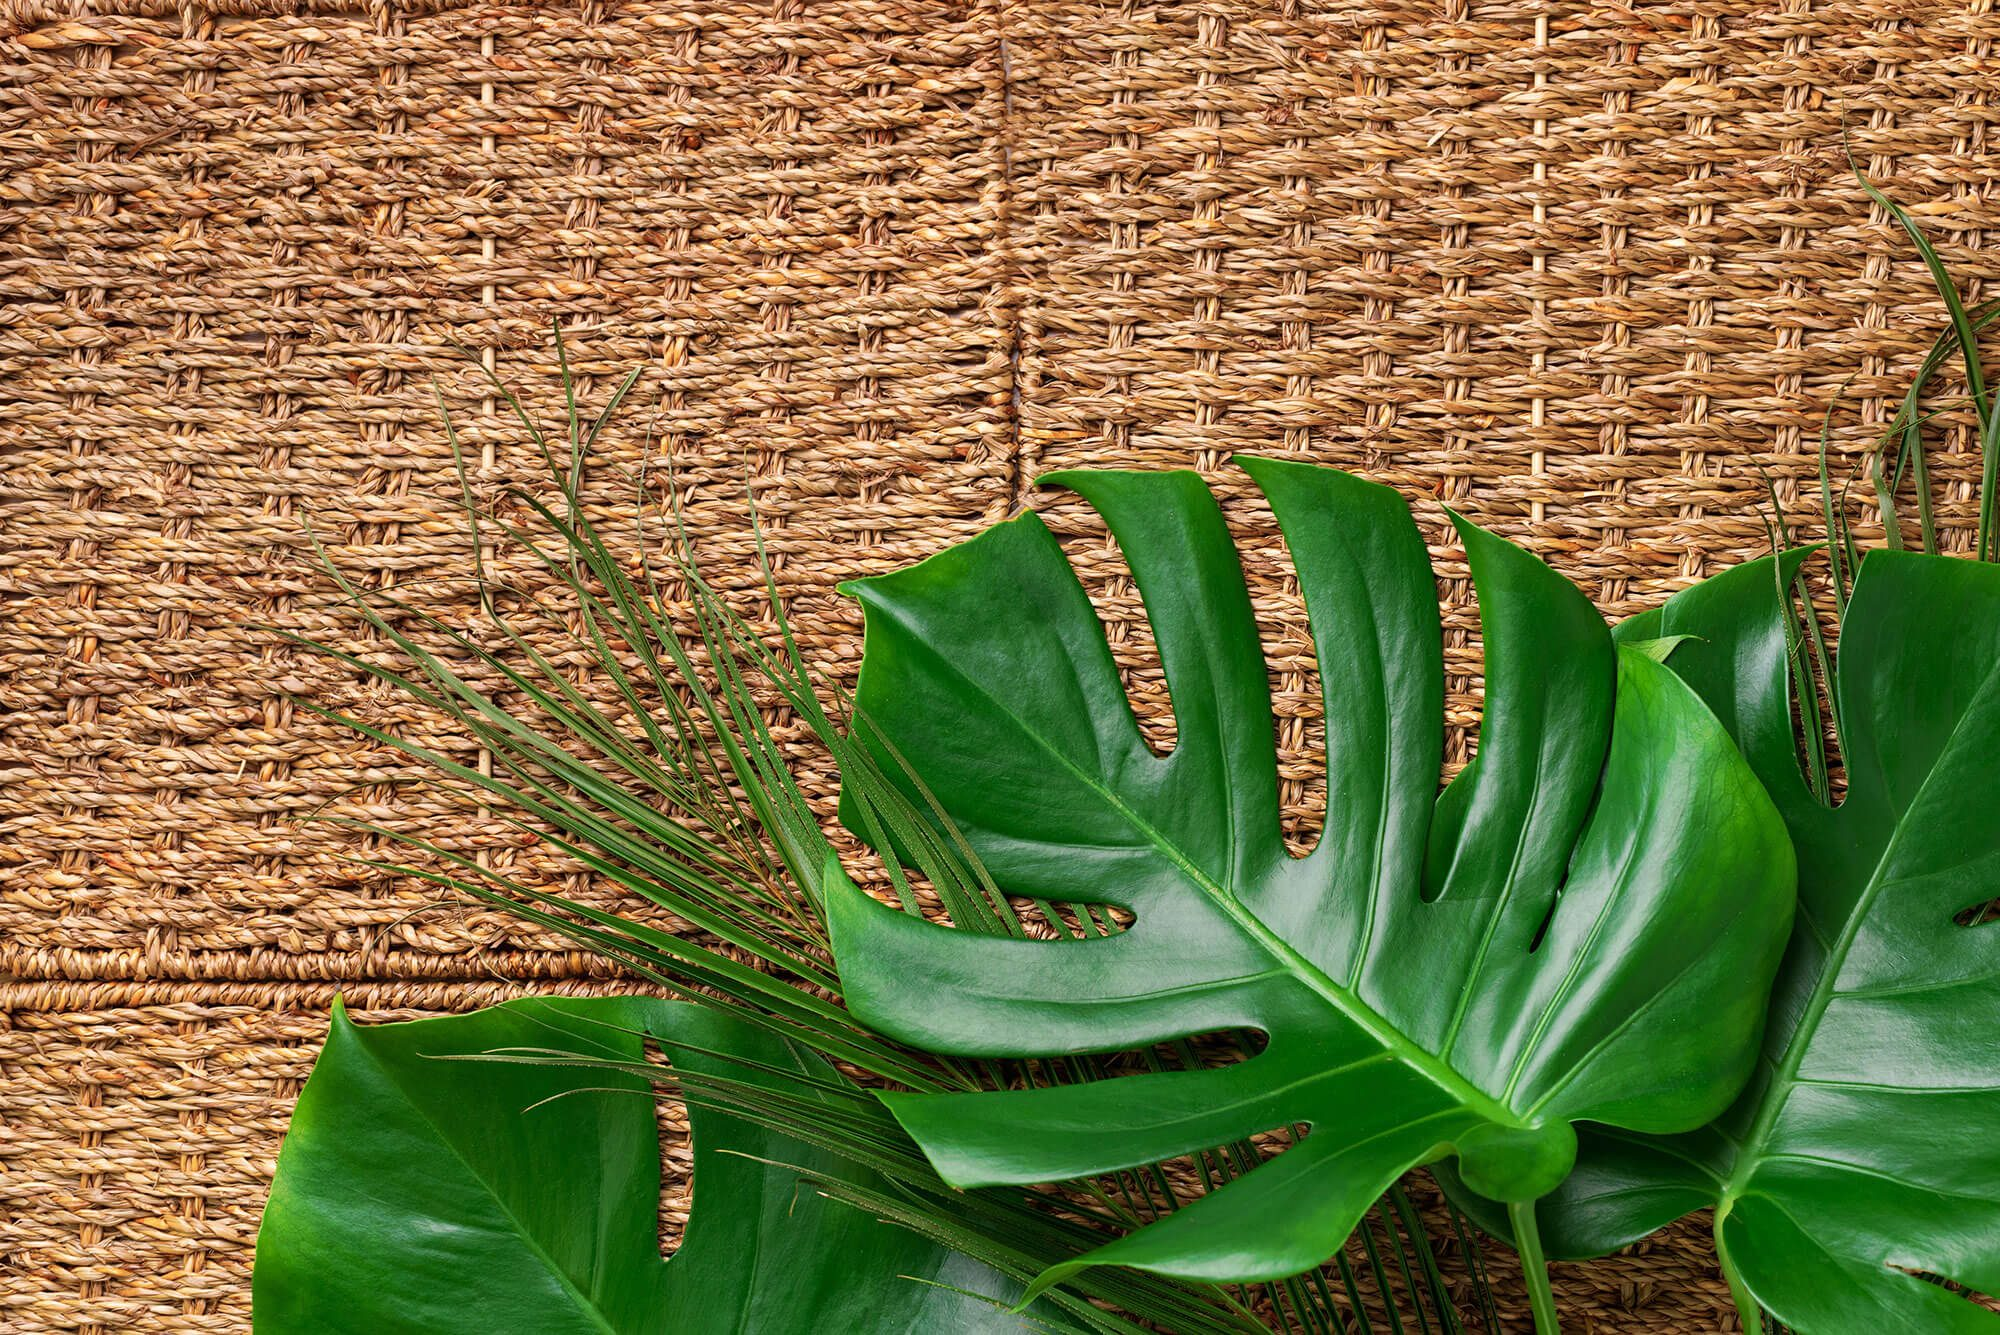 green palm and tropical monstera leaves on rattan GNAUHSY ohvvkd1wnv5qdpm0o1pd8sriqxr7lo9dnajqd43wn4 - Affiliate Listing